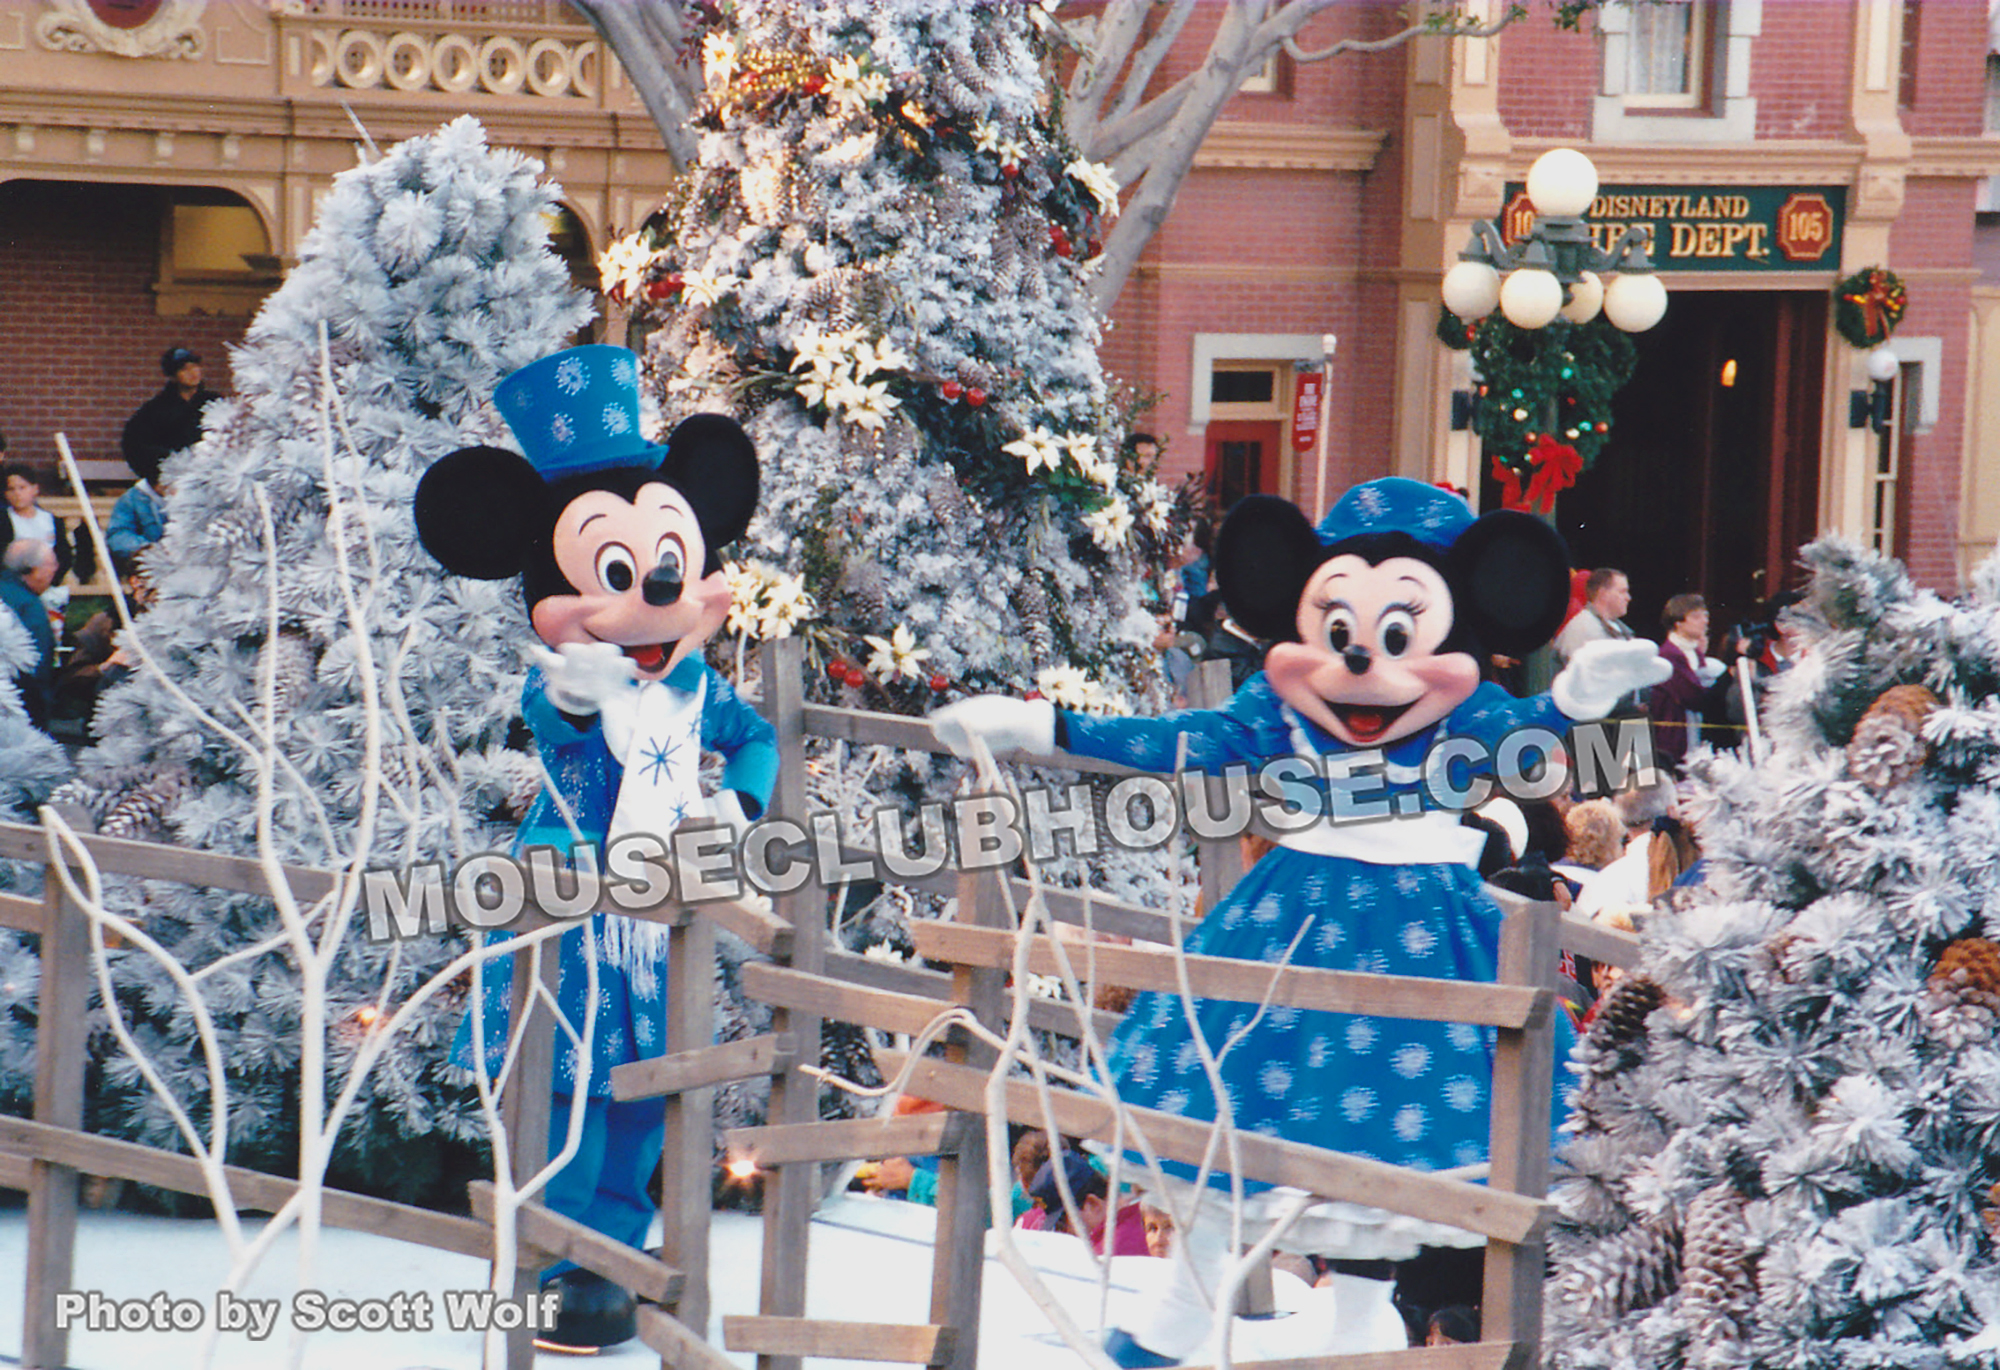 Anciennes Parades des Resorts Américains Very-Merry-Christmas-1992-mickeyminnie